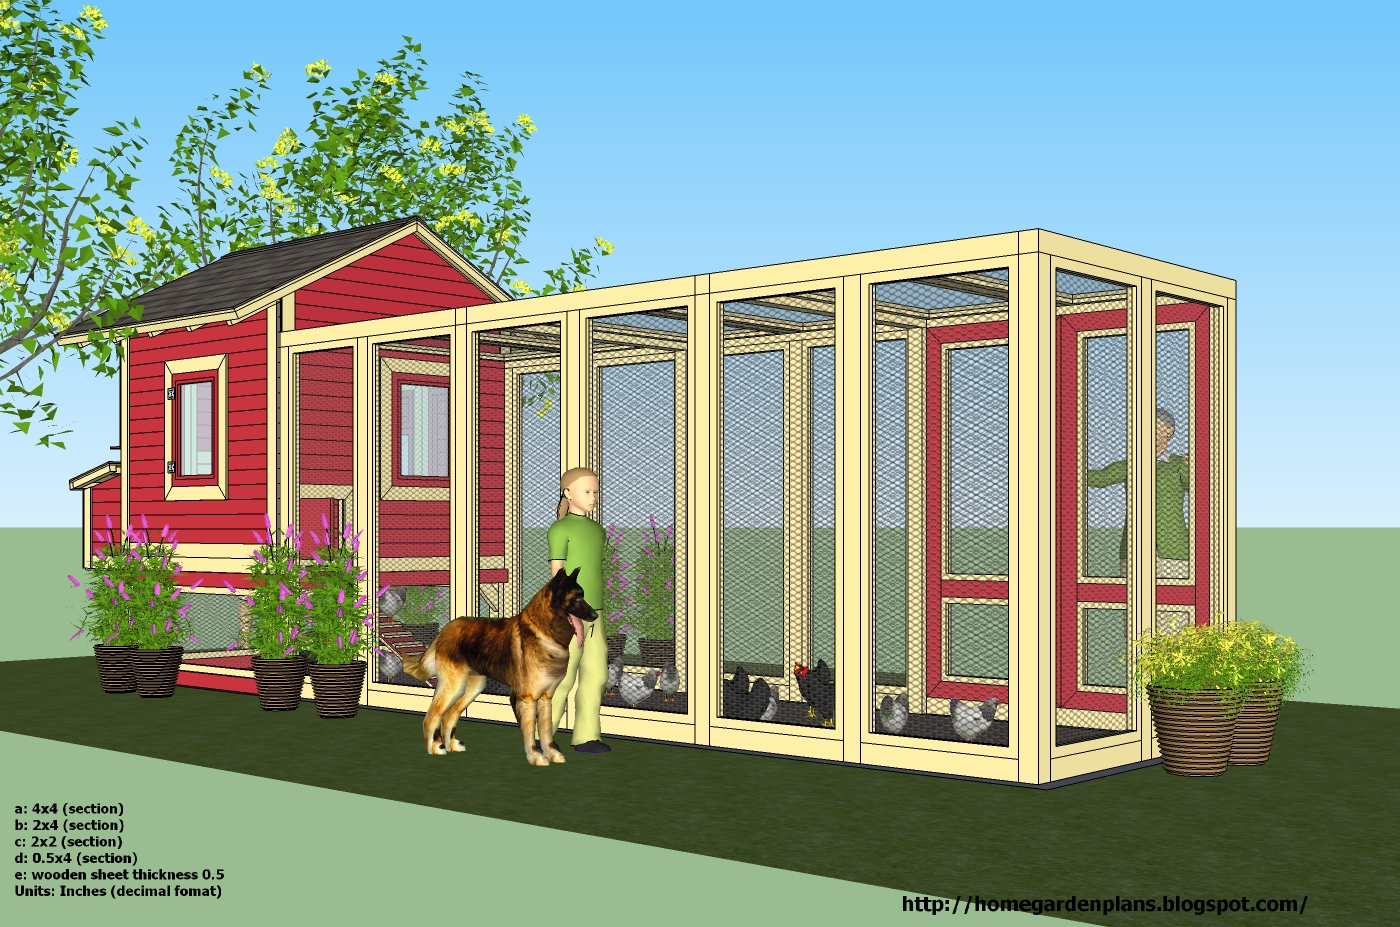 Home garden plans l102 chicken coop plans construction for Chicken coop size for 6 chickens